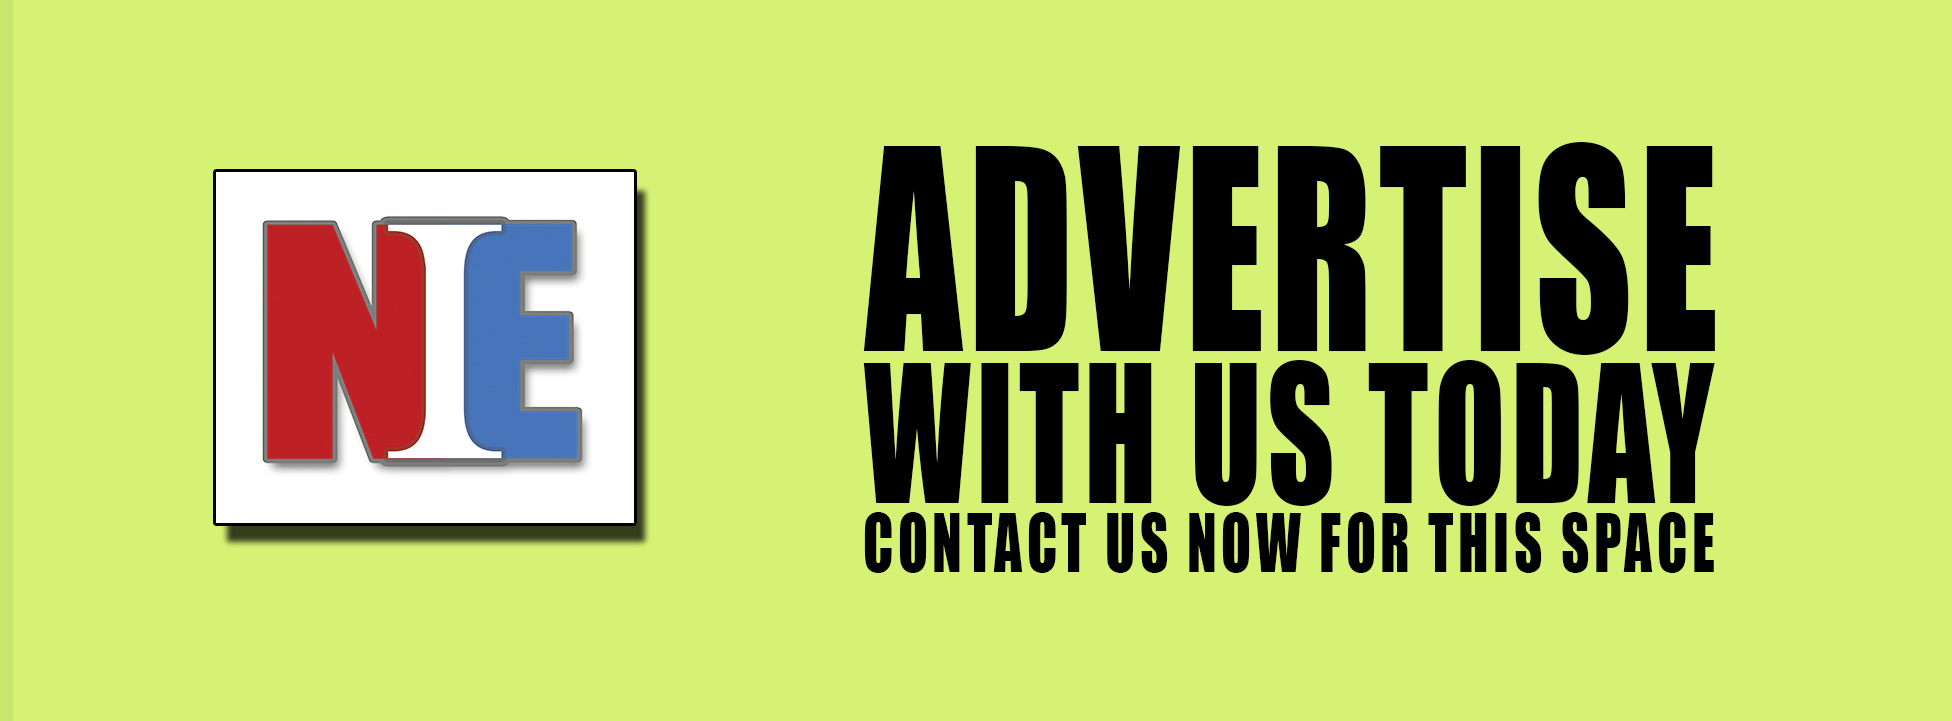 ADVERTISE WITH NEWS IN ENTERTAINMENT